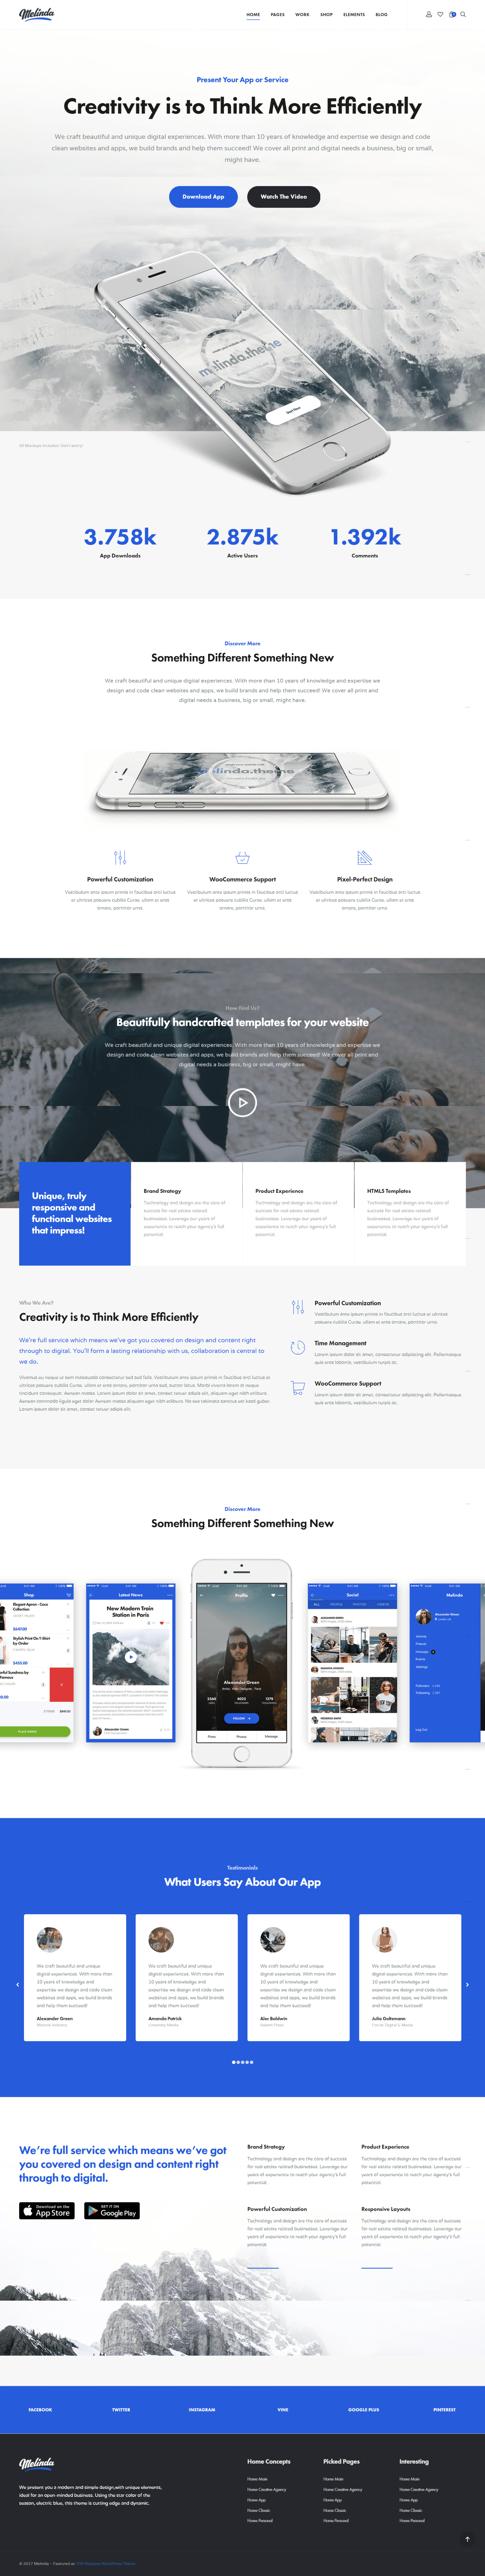 Modern And Simple Design Wordpress Theme Clean And Minimal Website Design Inspiration Moder Minimal Website Design Website Design Inspiration Wordpress Theme